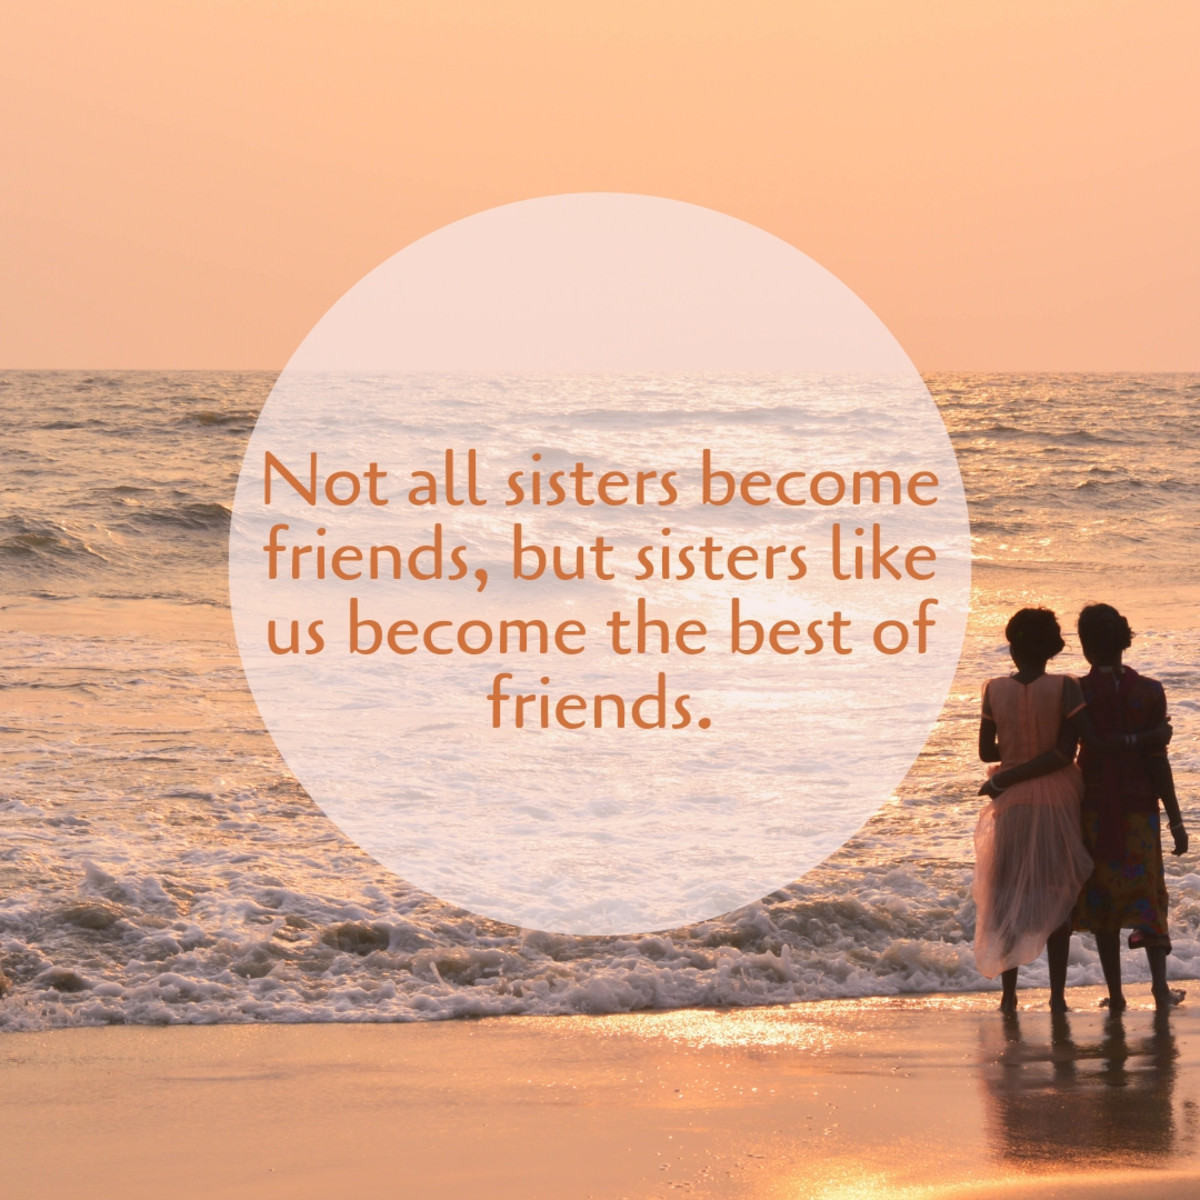 If your sister is your best friend, make sure you let her know how much she means to you.